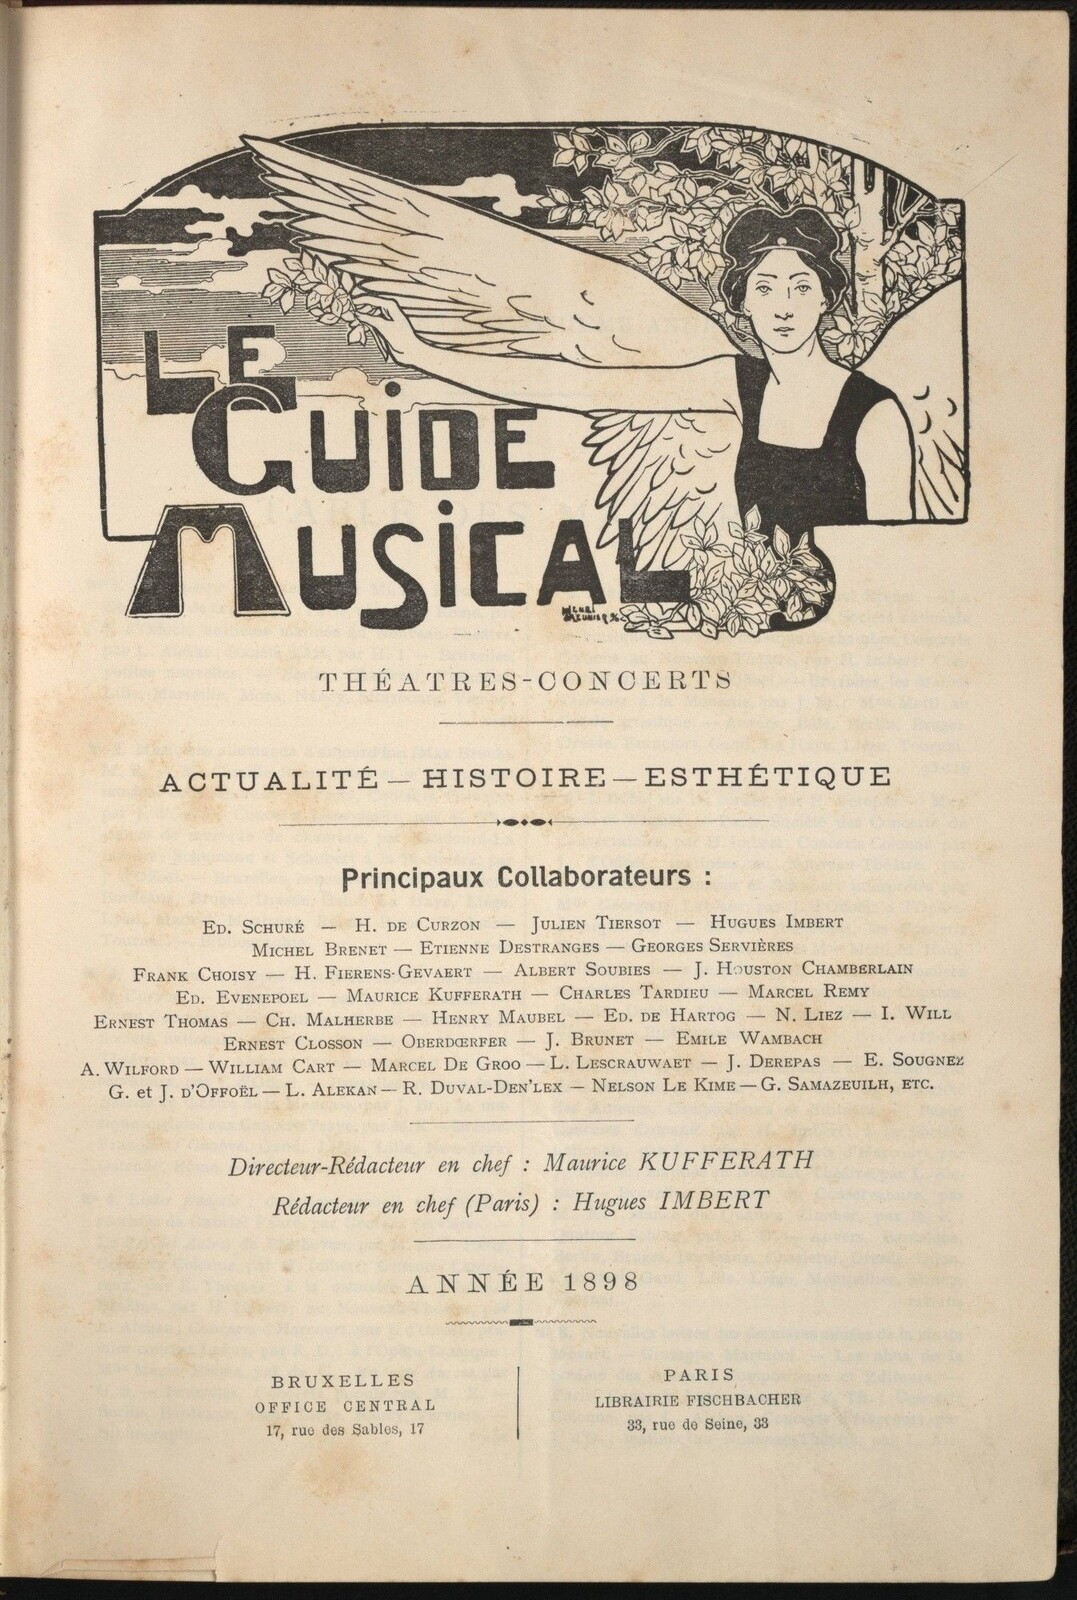 Le Guide Musical.<br>